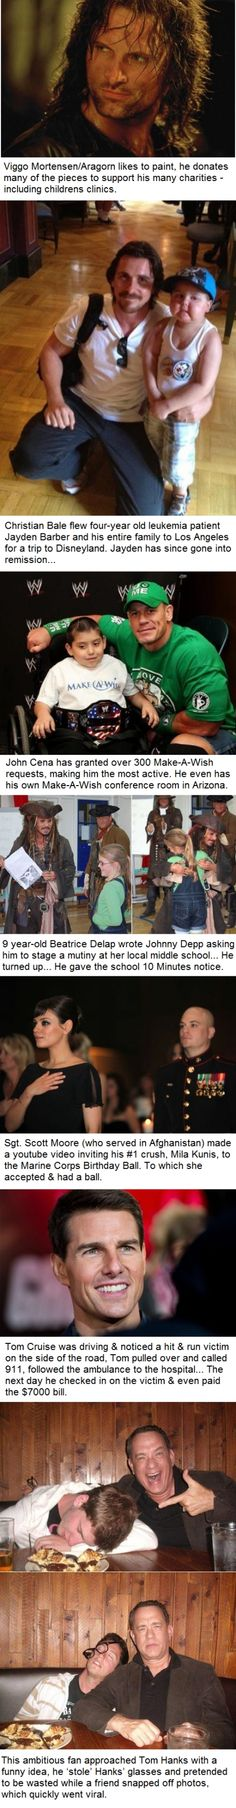 Some celebrities are just awesome.